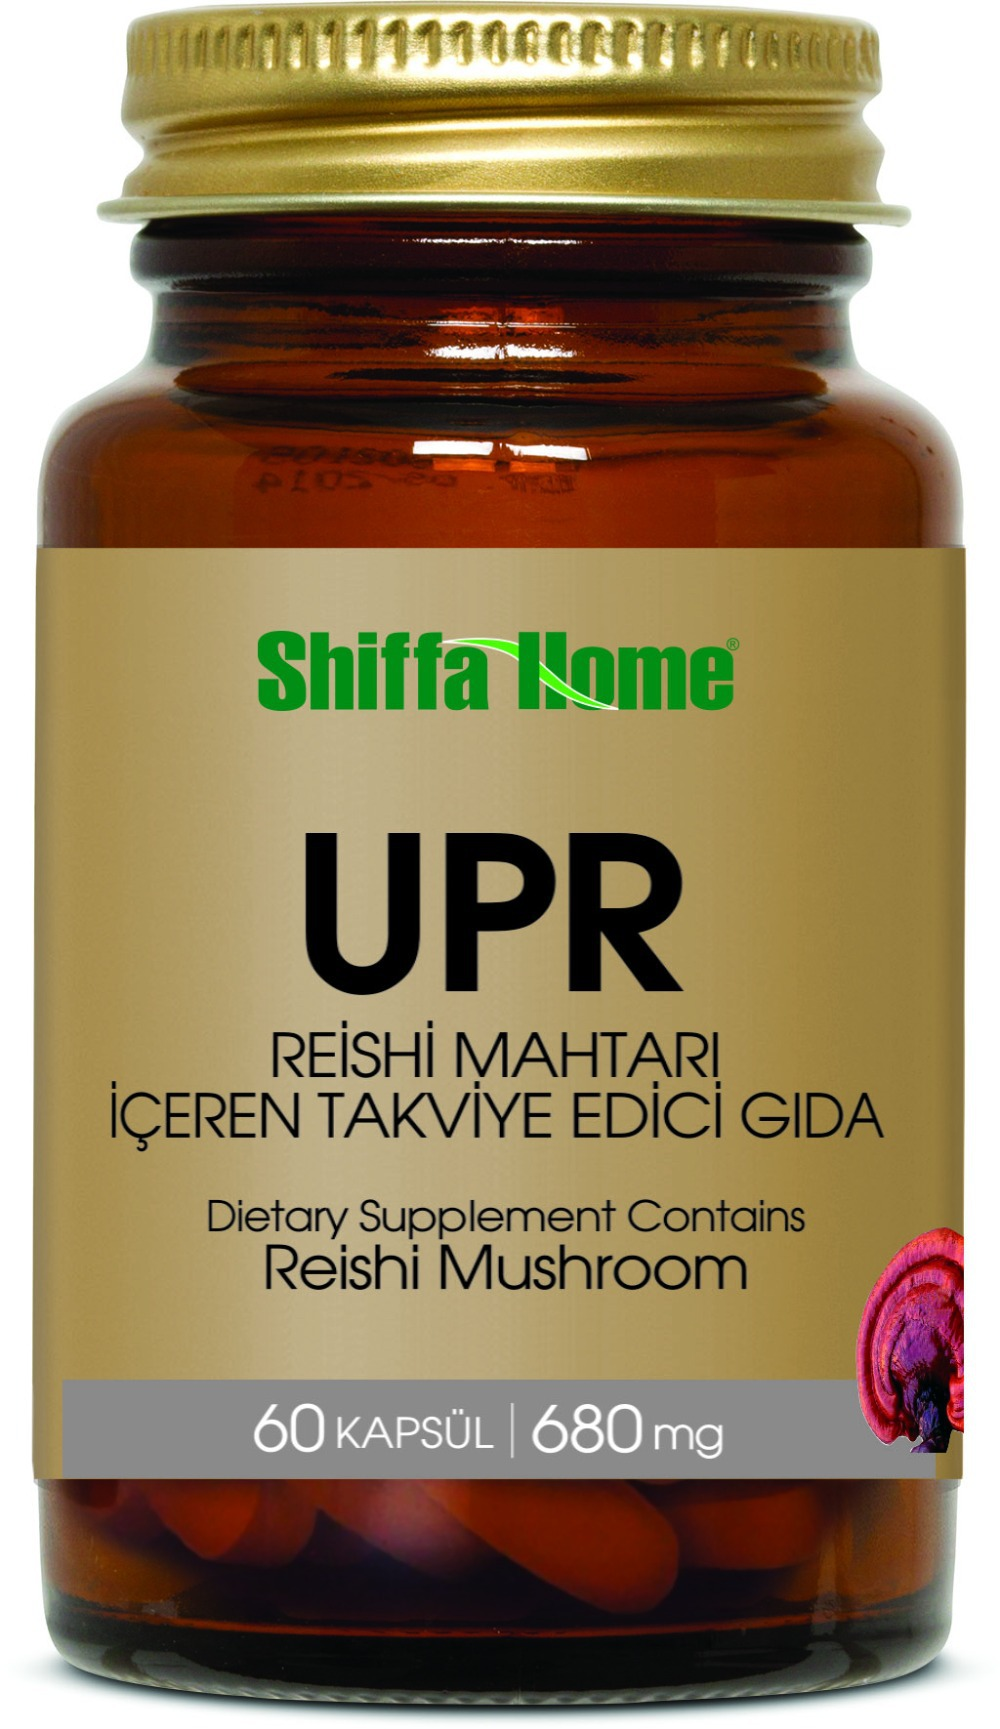 UPR Propolis, Reishi Mushroom, Royal Jelly, Black Grape Seed Extract in Softgel Vegetable Capsules Food Supplement